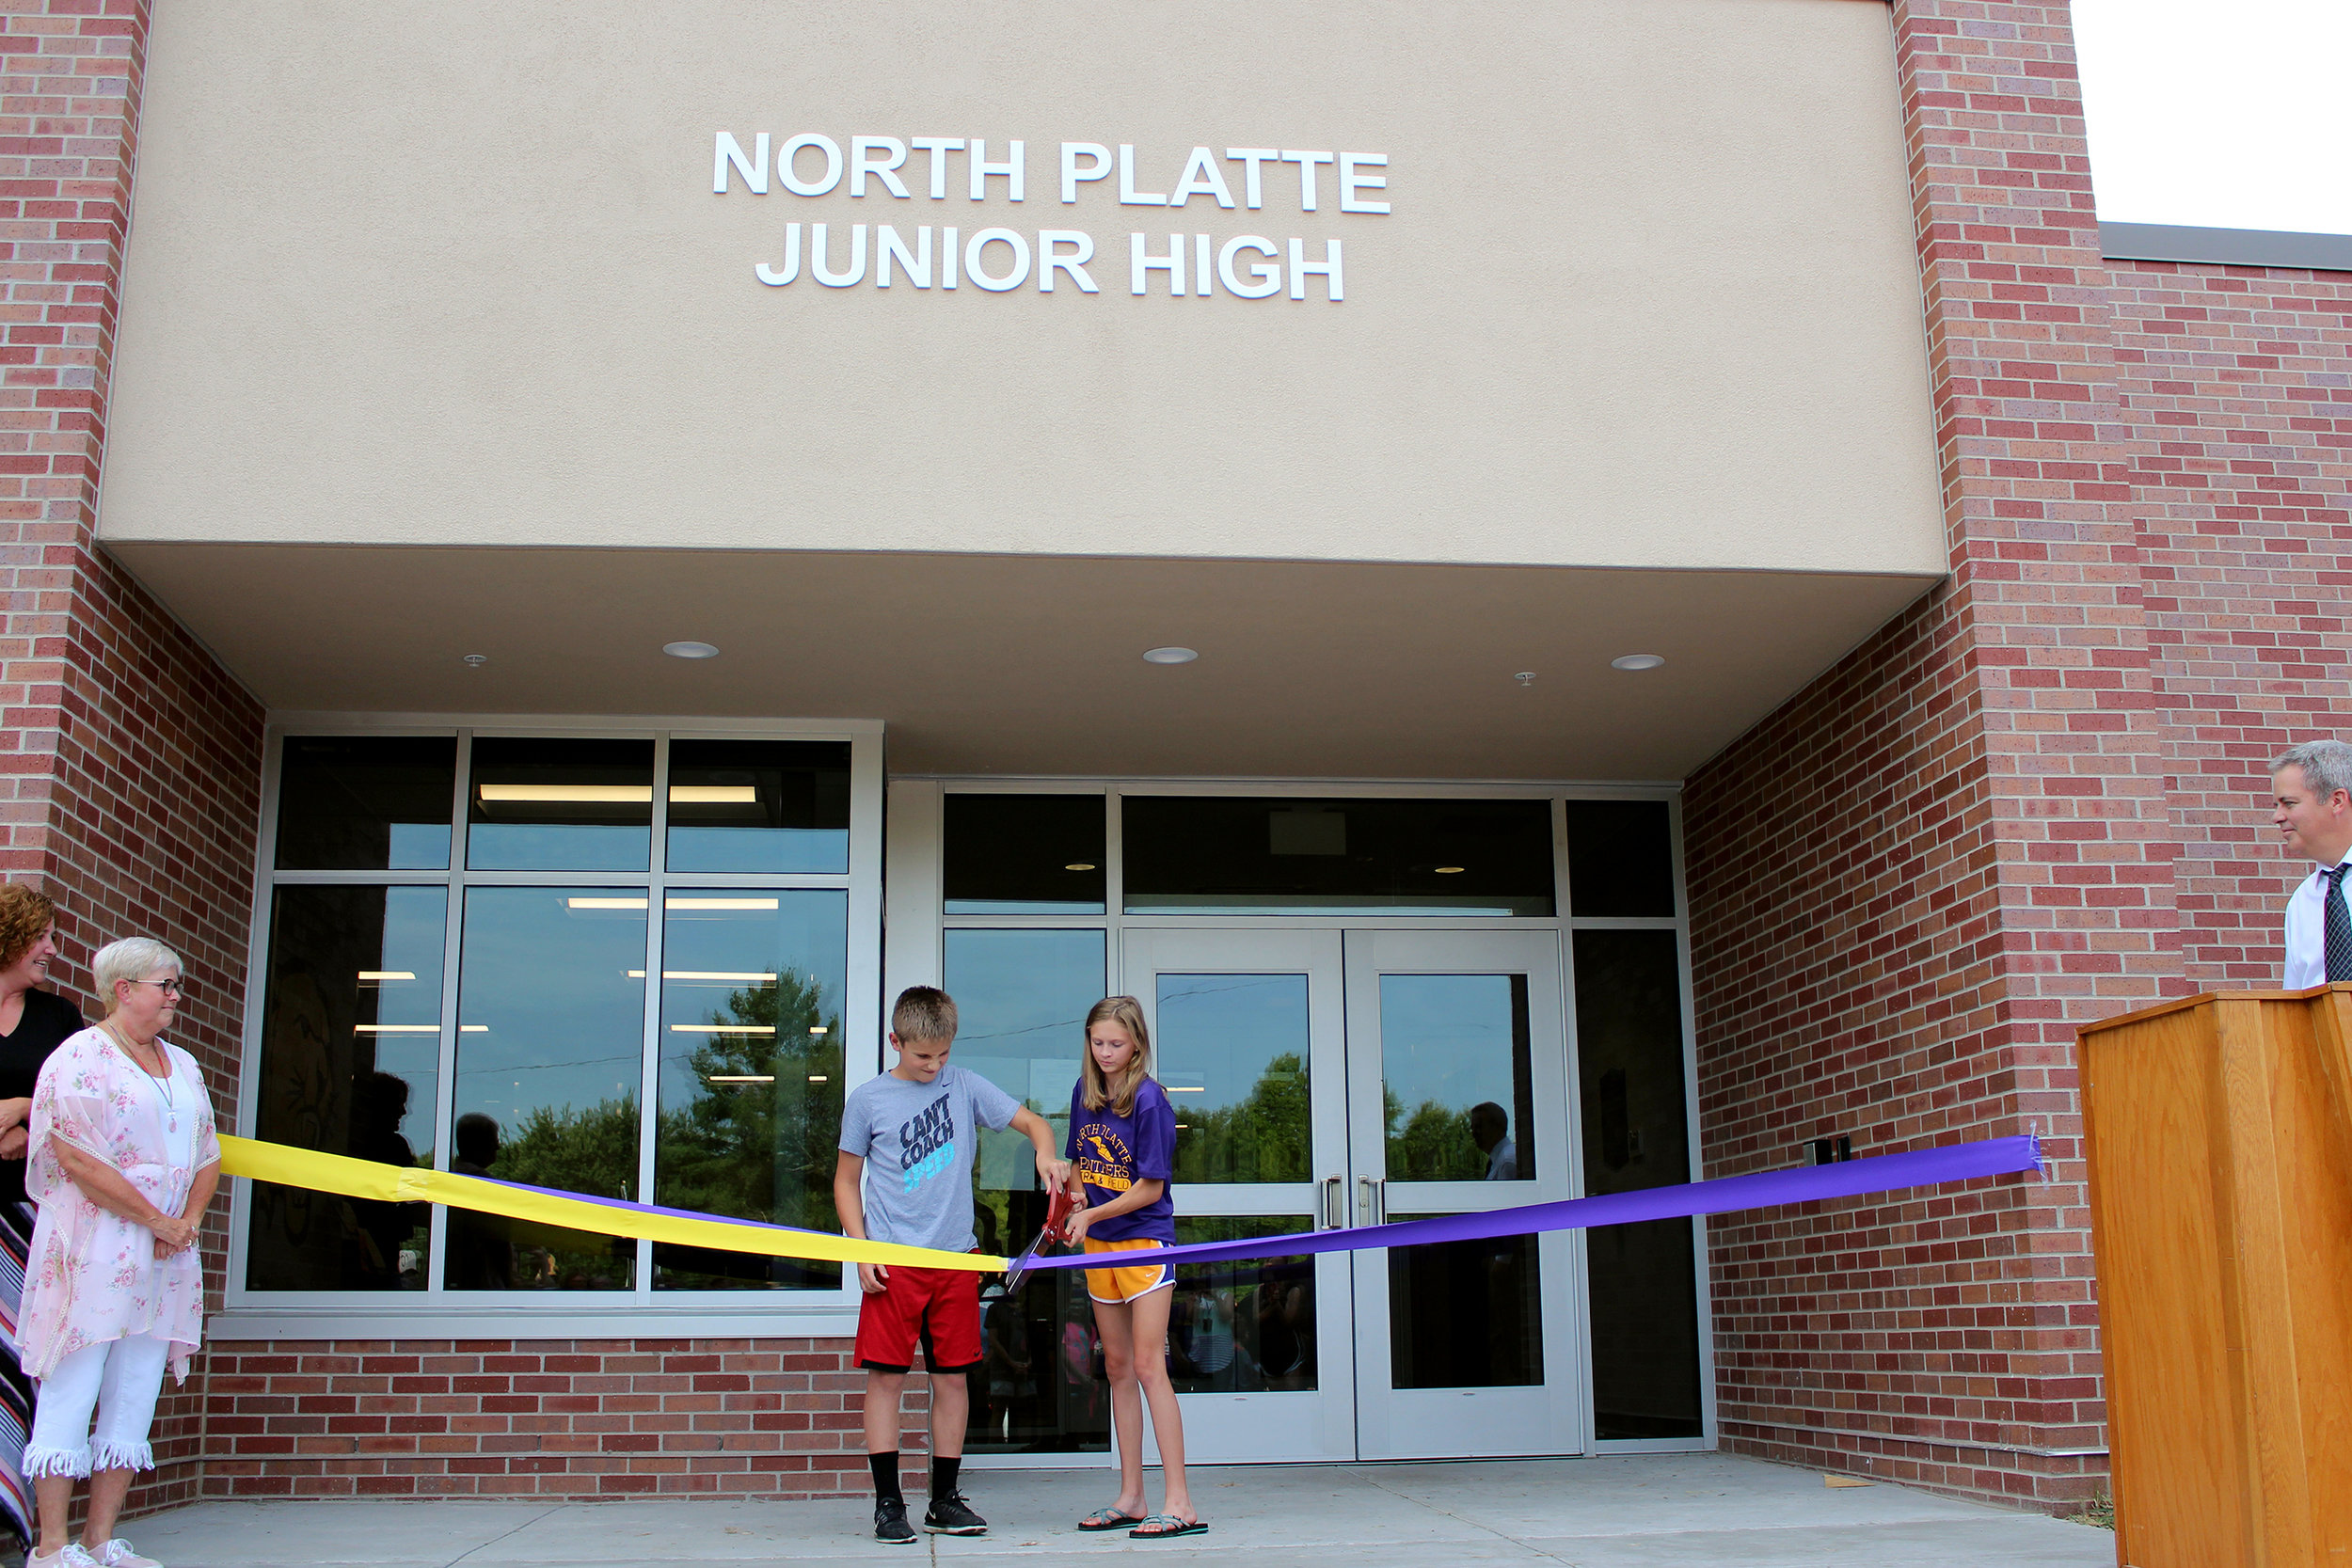 CODY THORN/Citizen photo North Platte sixth grader Ashton Shepardson, left, and Olivia Rogers, an eighth grader, cut the ceremonial ribbon placed in front of the new entrance for the North Platte Junior High. A $6.65 million dollar construction project saw portions of the building, first constructed in 1930, undergo extensive renovations. The ribbon cutting was held 10 days before the start of school.